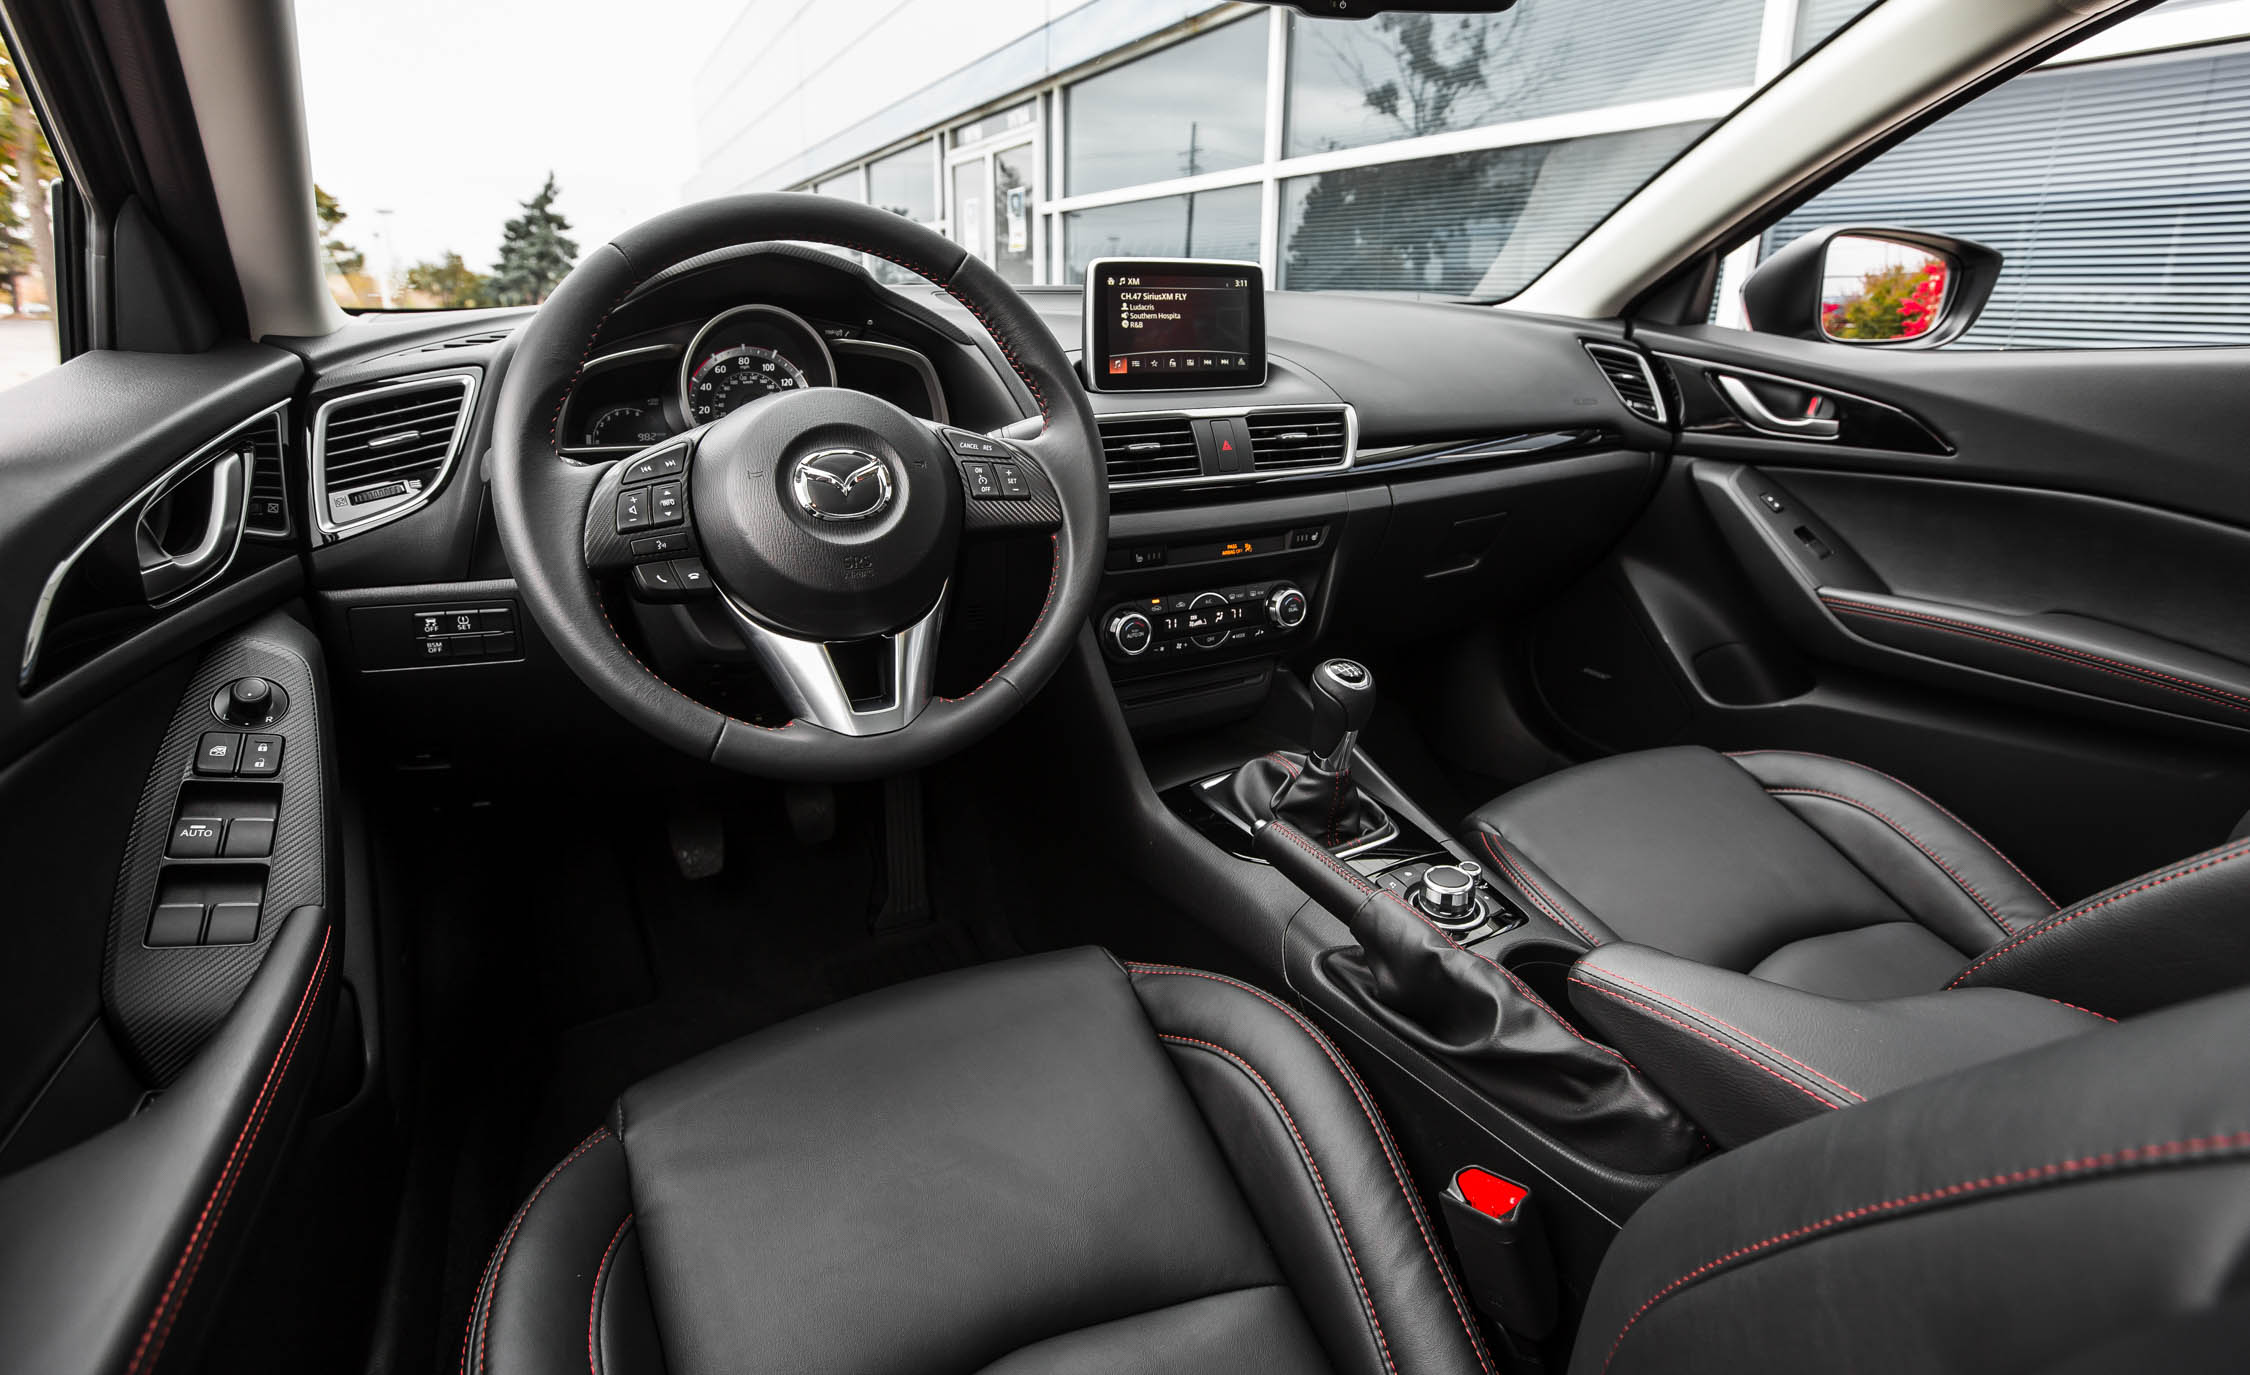 2016 Mazda 3 (View 13 of 22)